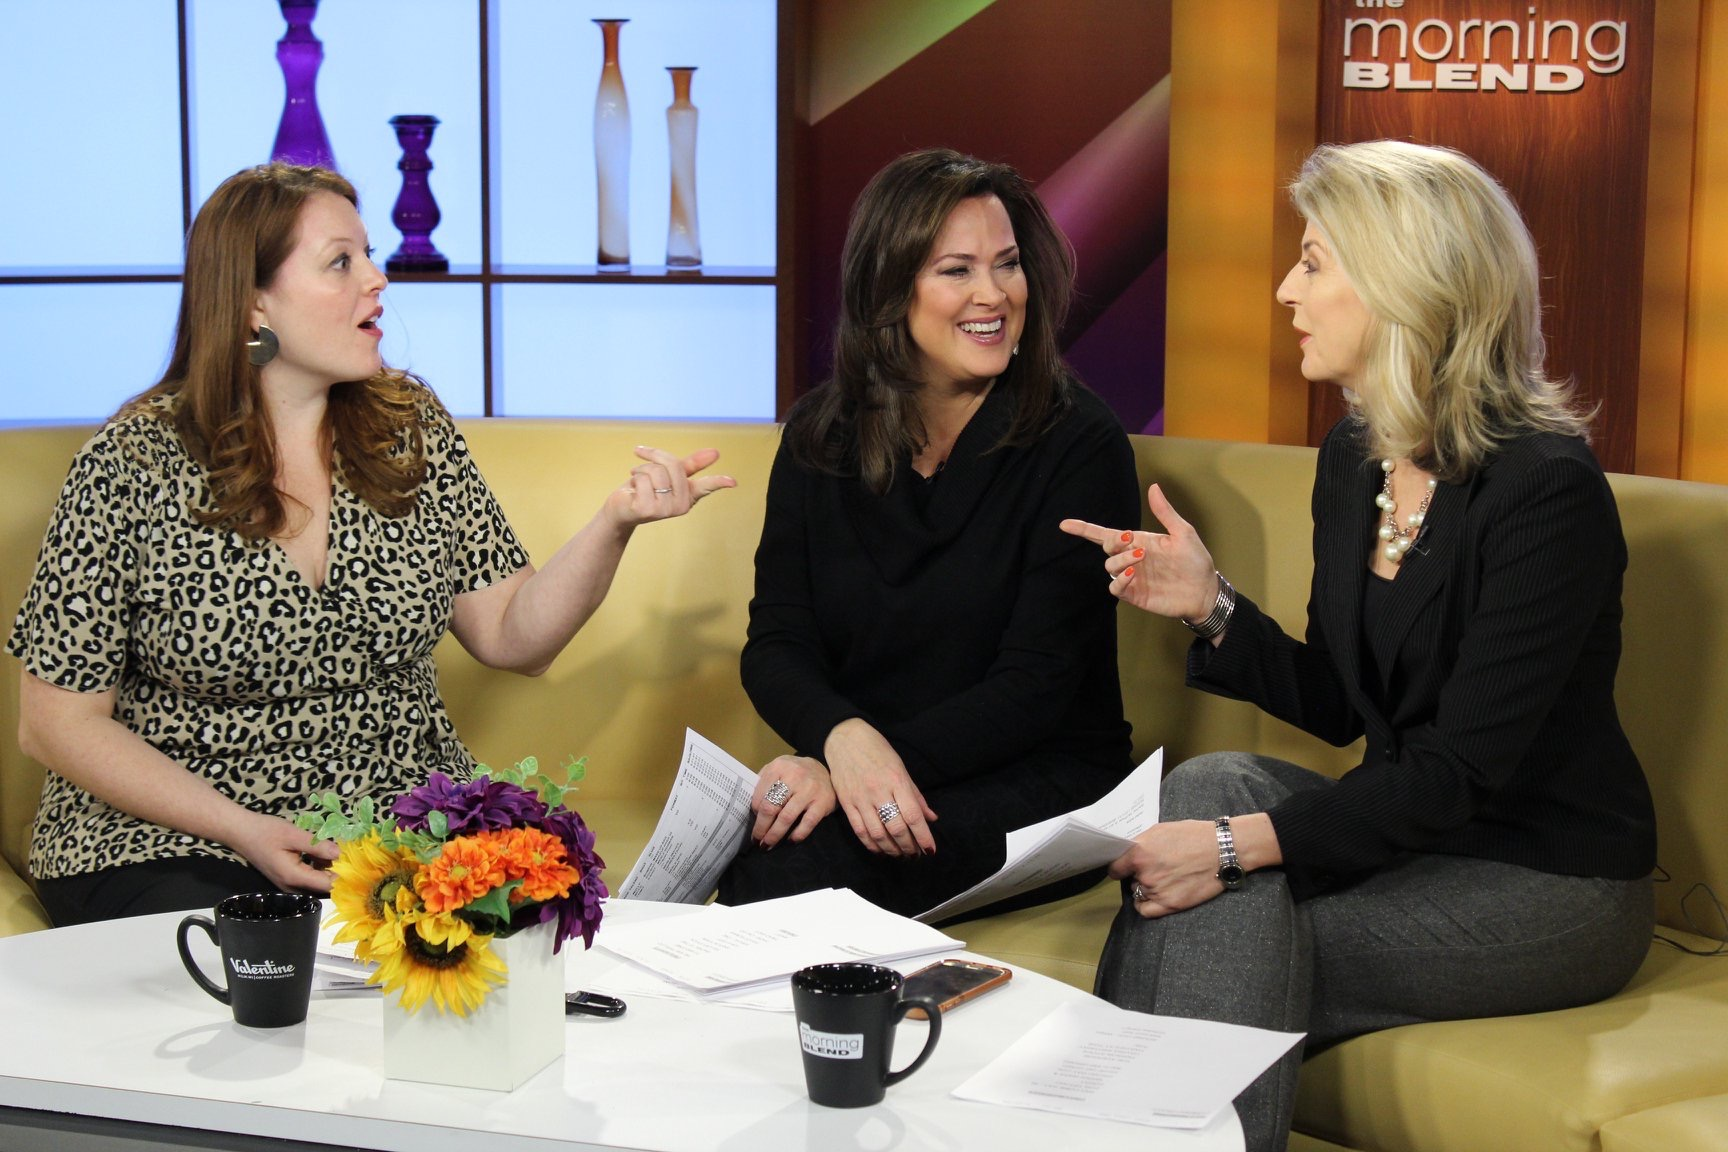 Rachel chatting with the gals on The Morning Blend